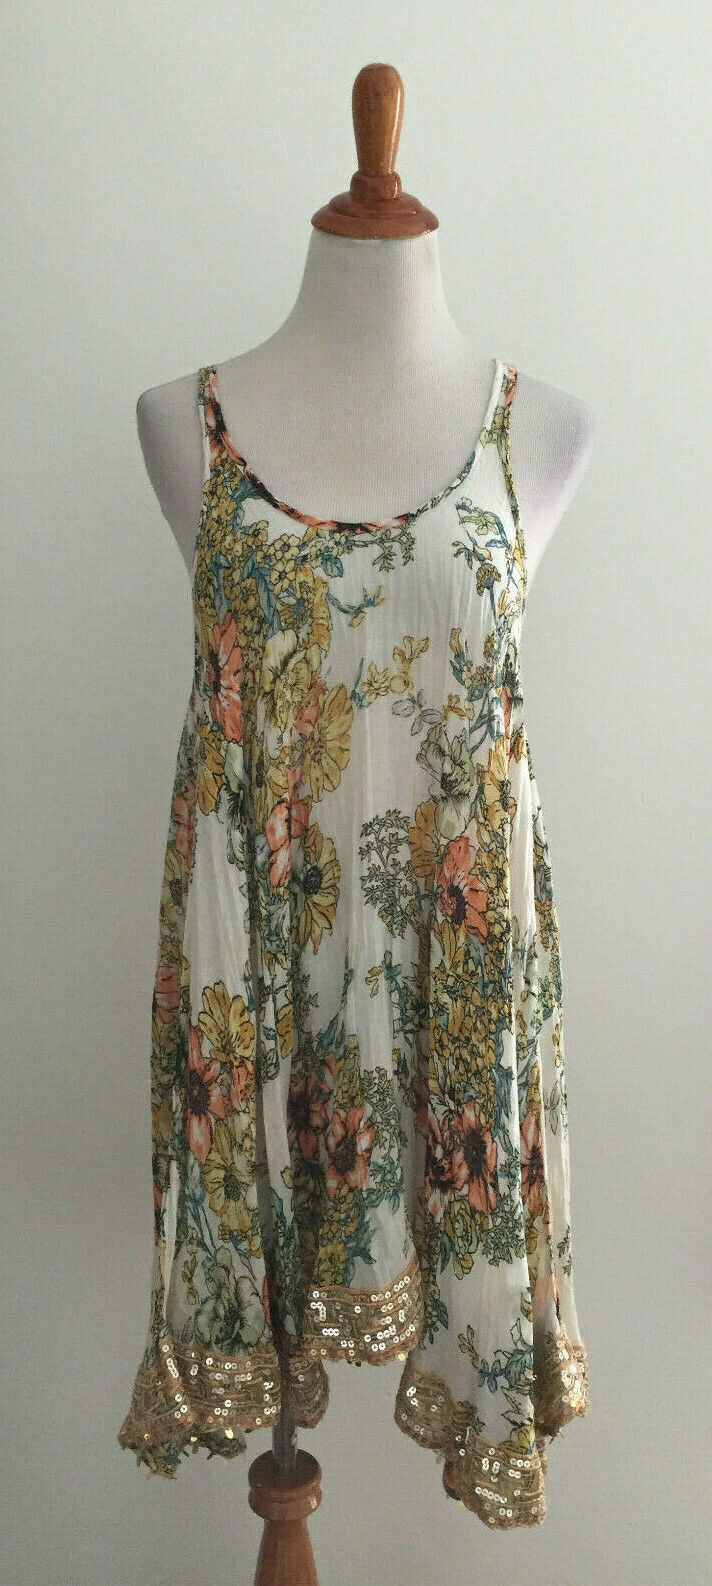 Free People ONE Floral Print Sequin Accent Boho Dress sz XS